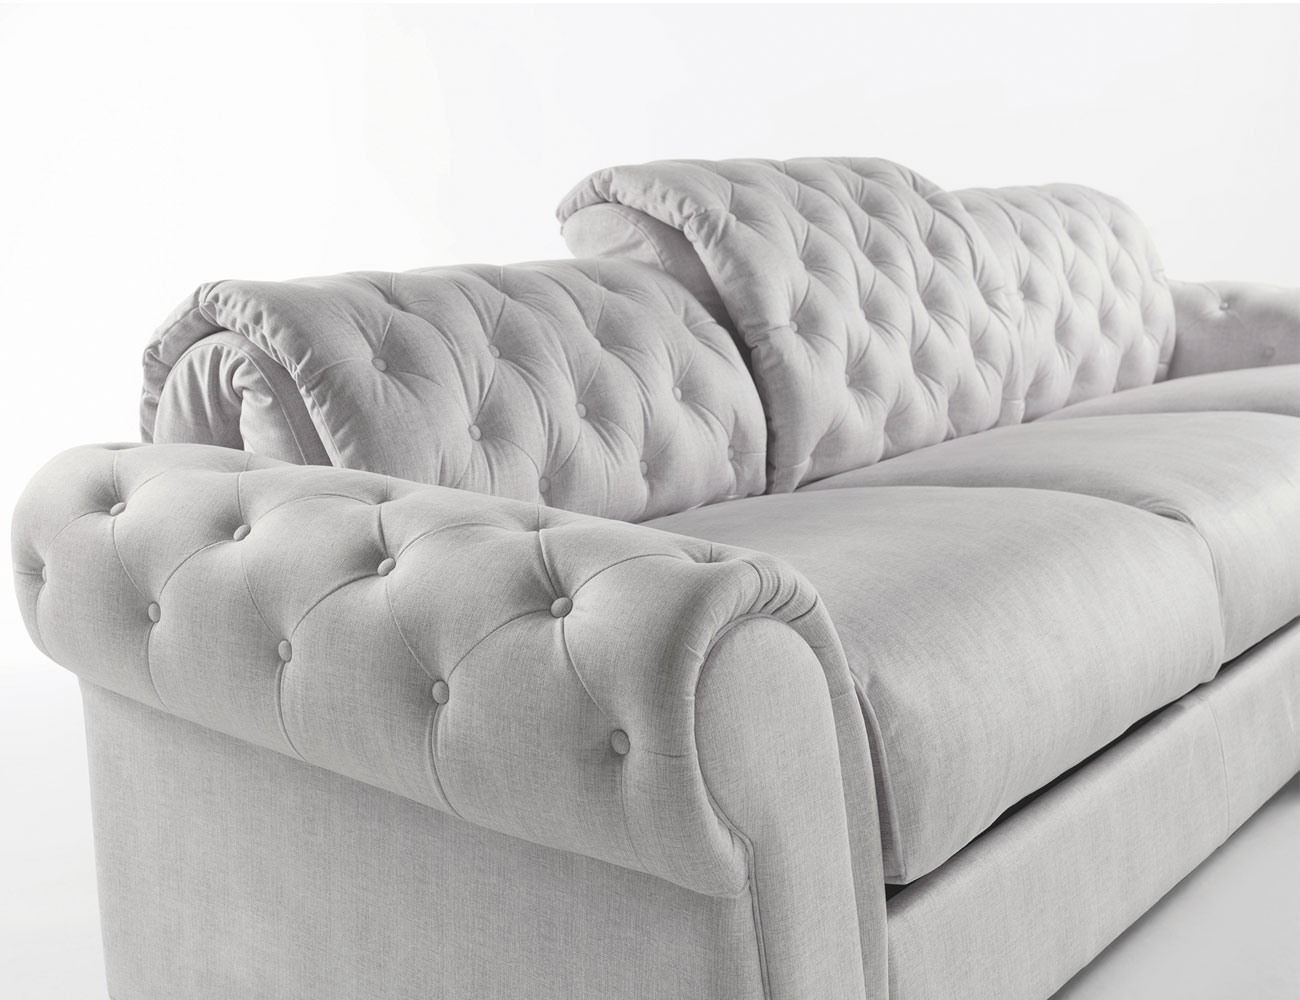 Sofa chaiselongue gran lujo decorativo capitone blanco tela 112